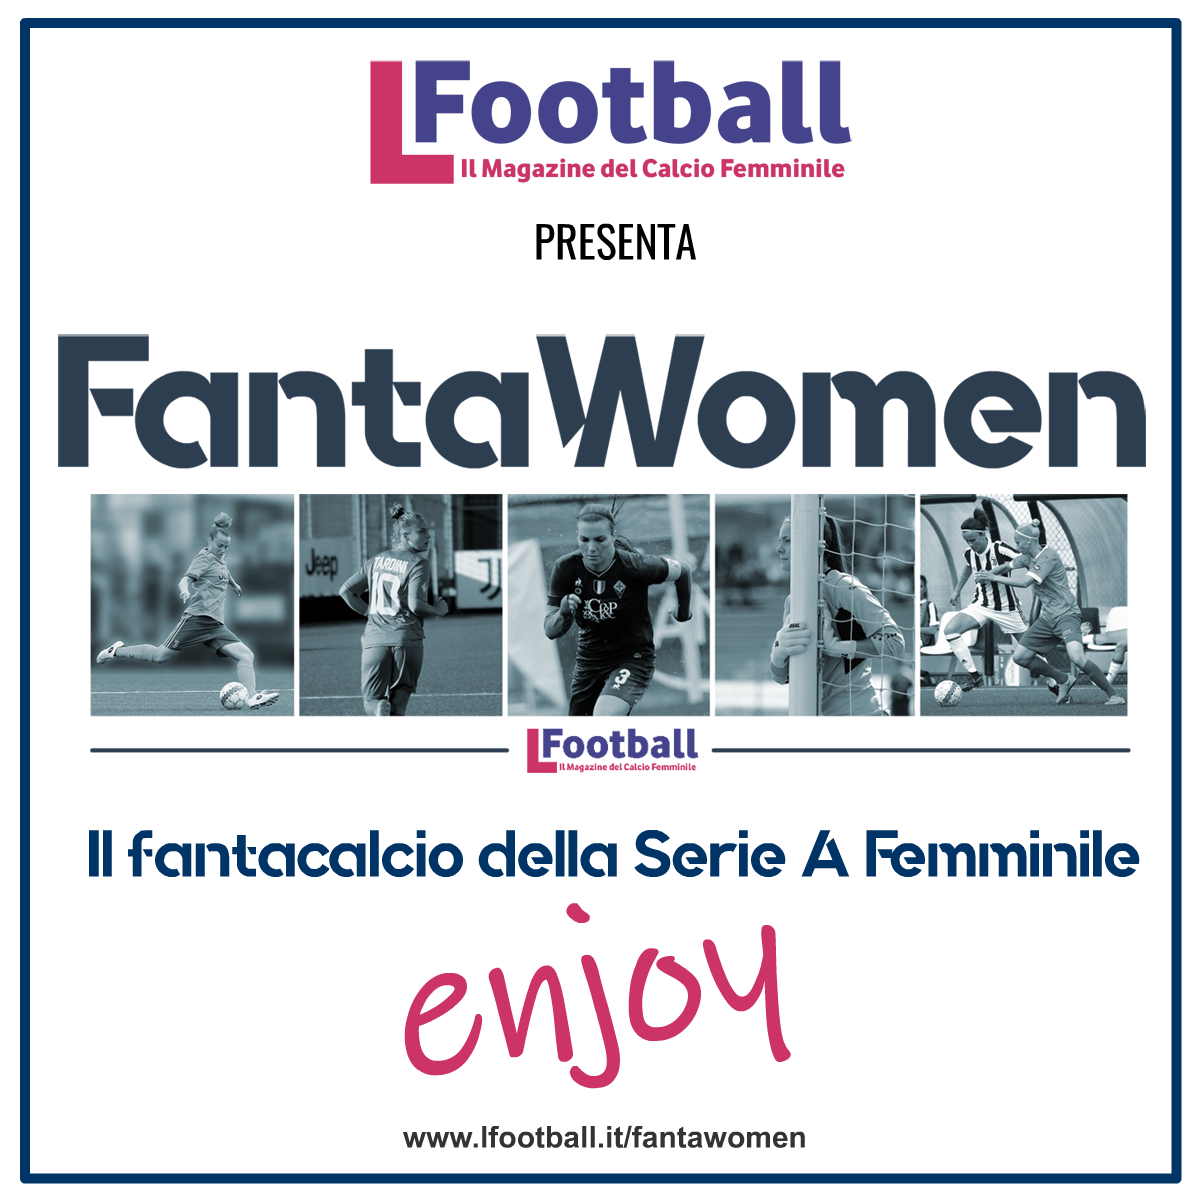 Partecipa a FantaWomen, il fantacalcio della Serie A femminile!